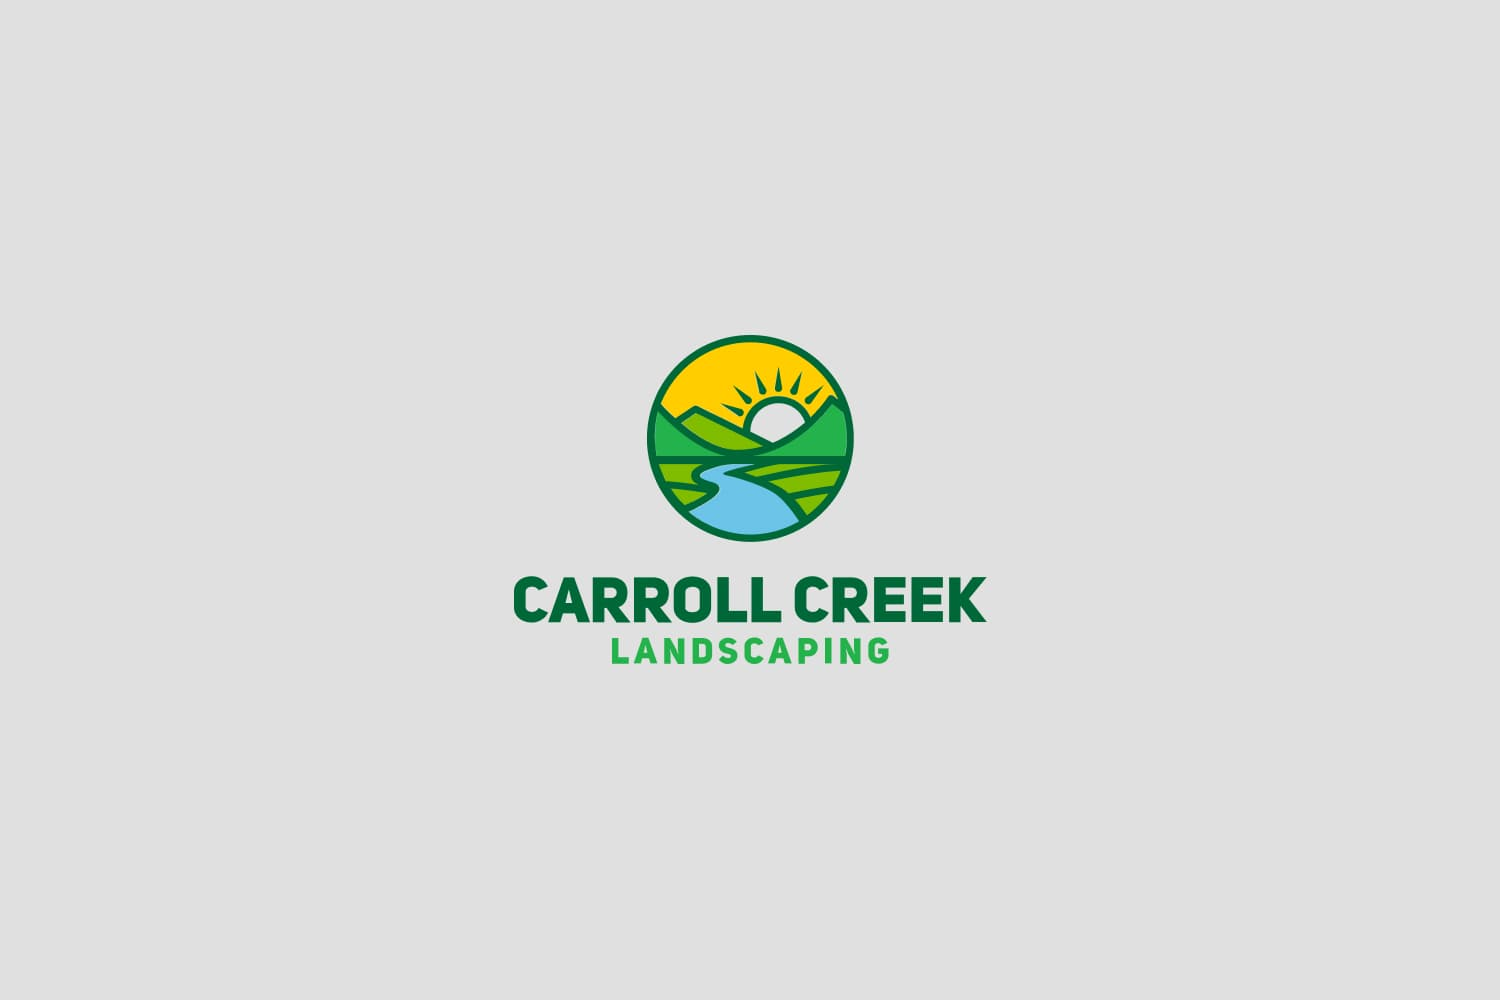 Carroll Creek Landscaping